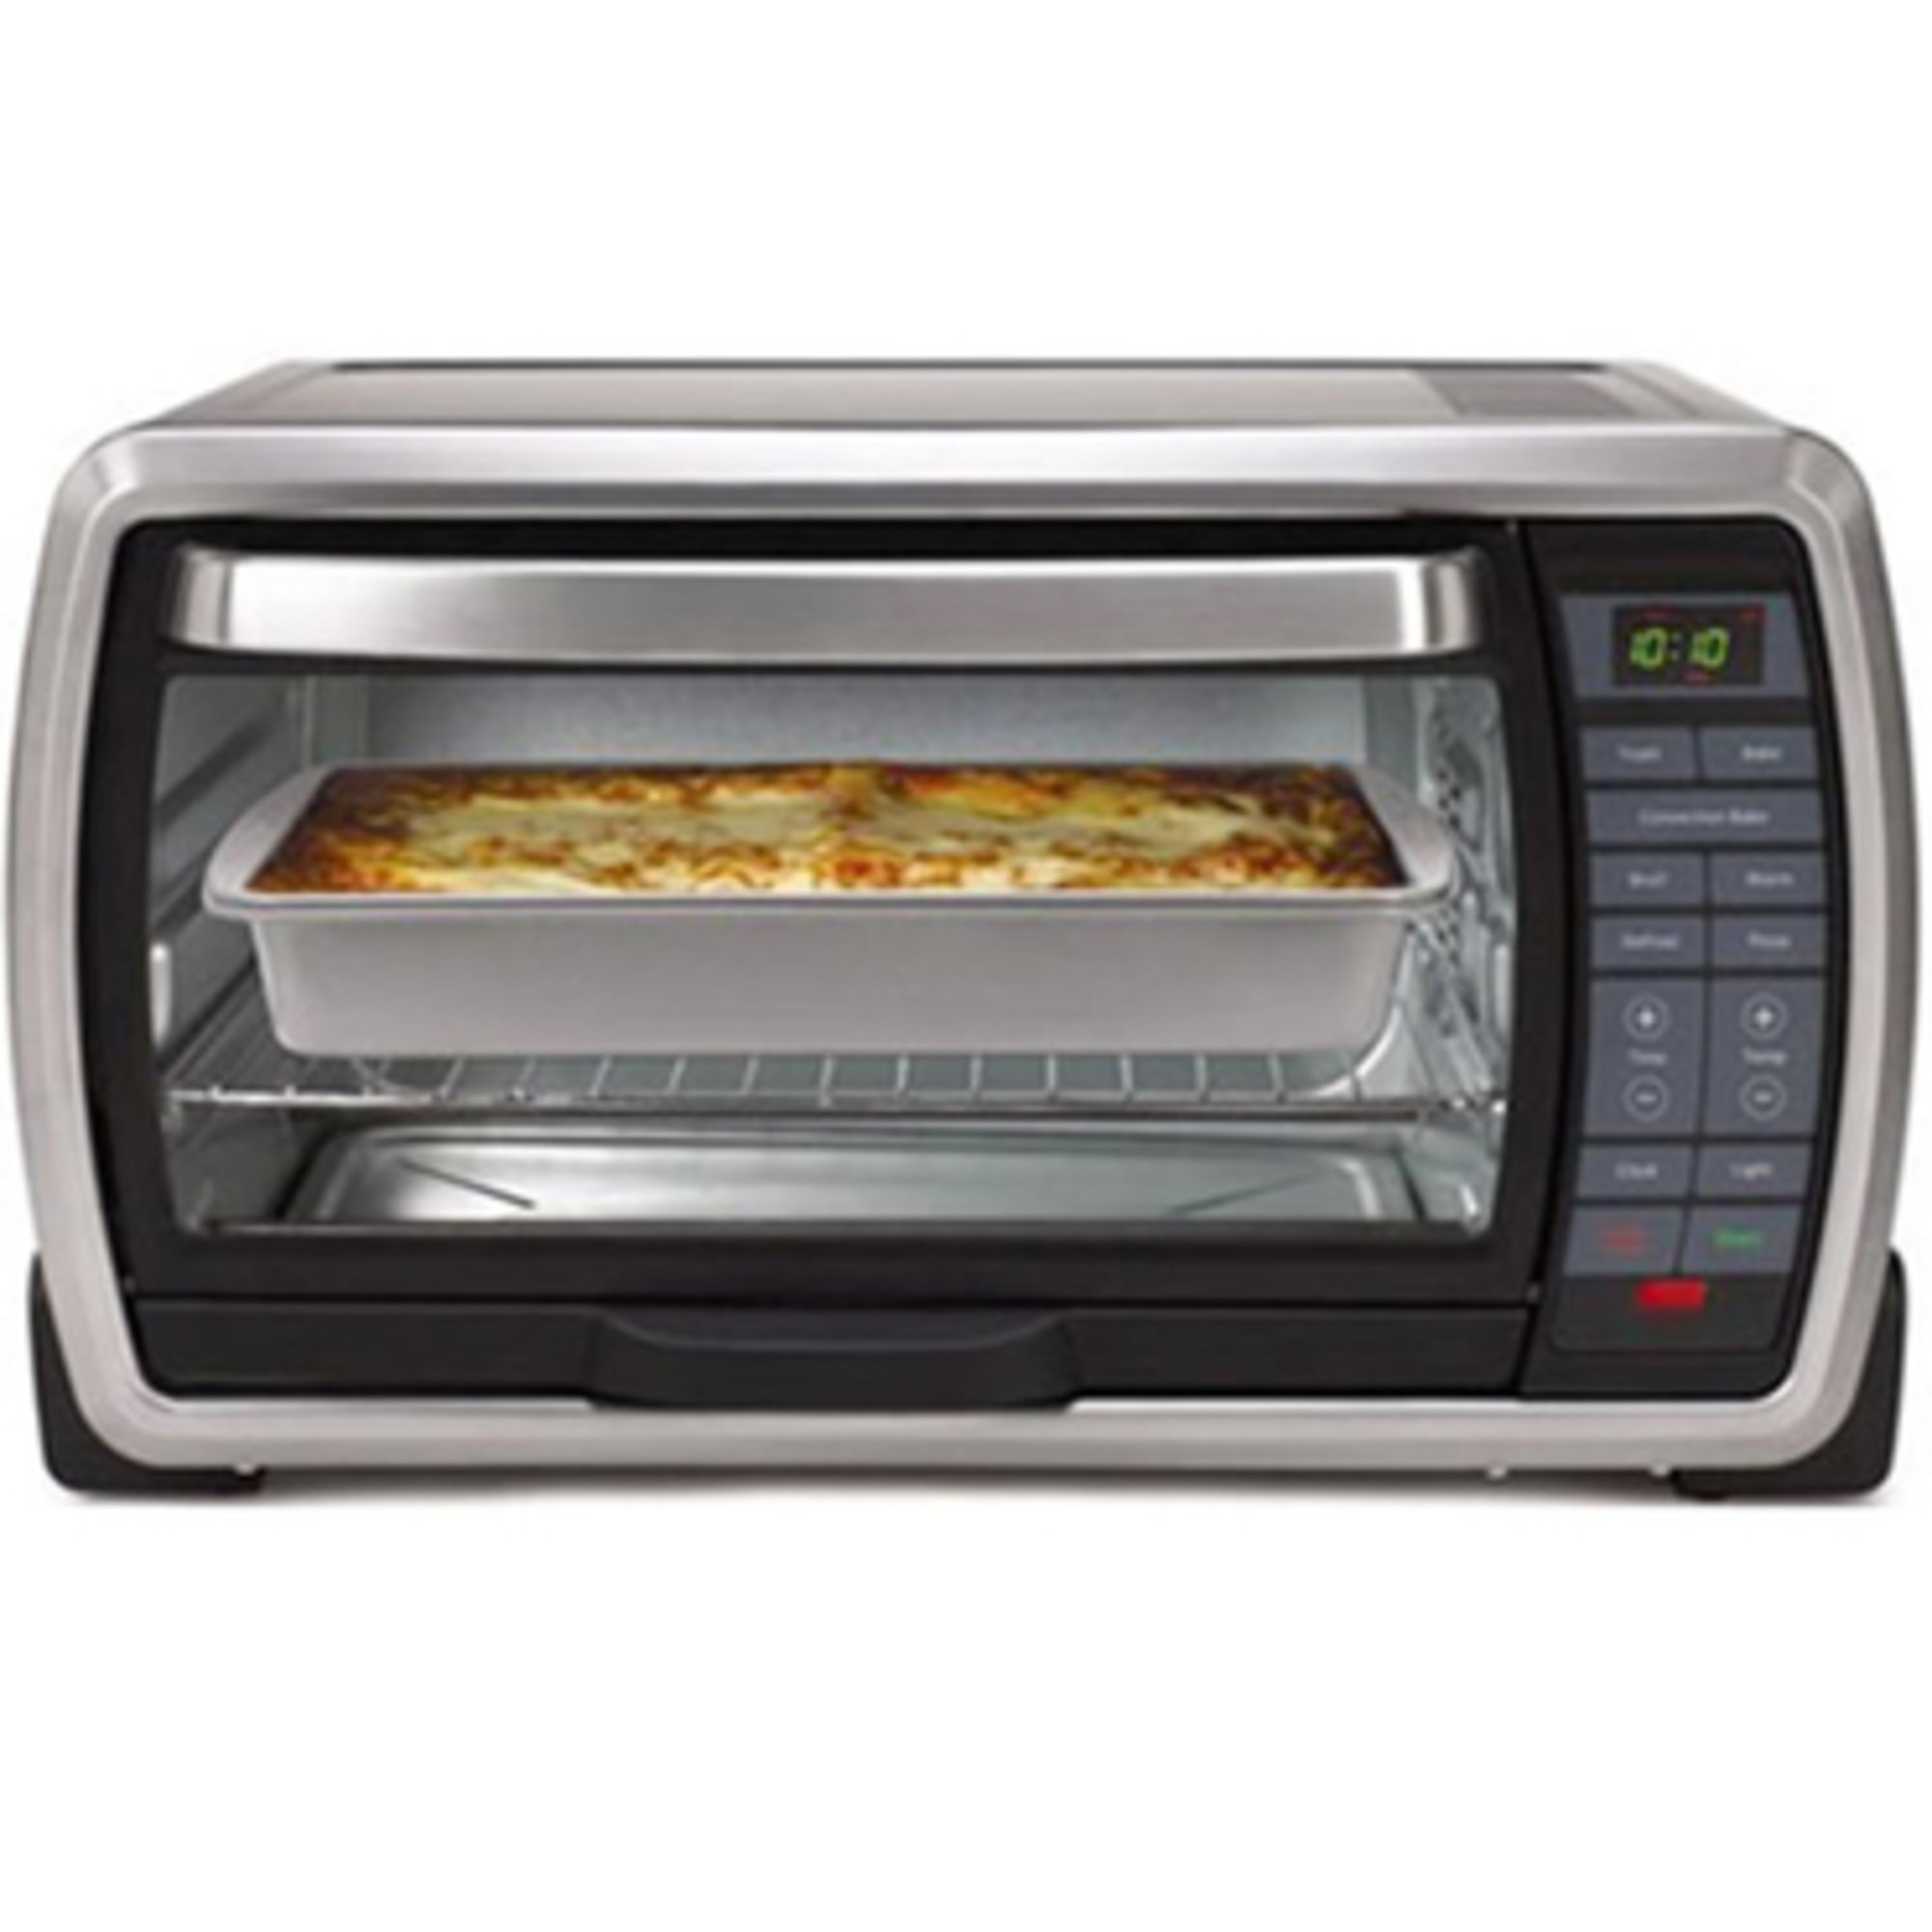 Oster Large Capacity Countertop Digital Convection Toaster